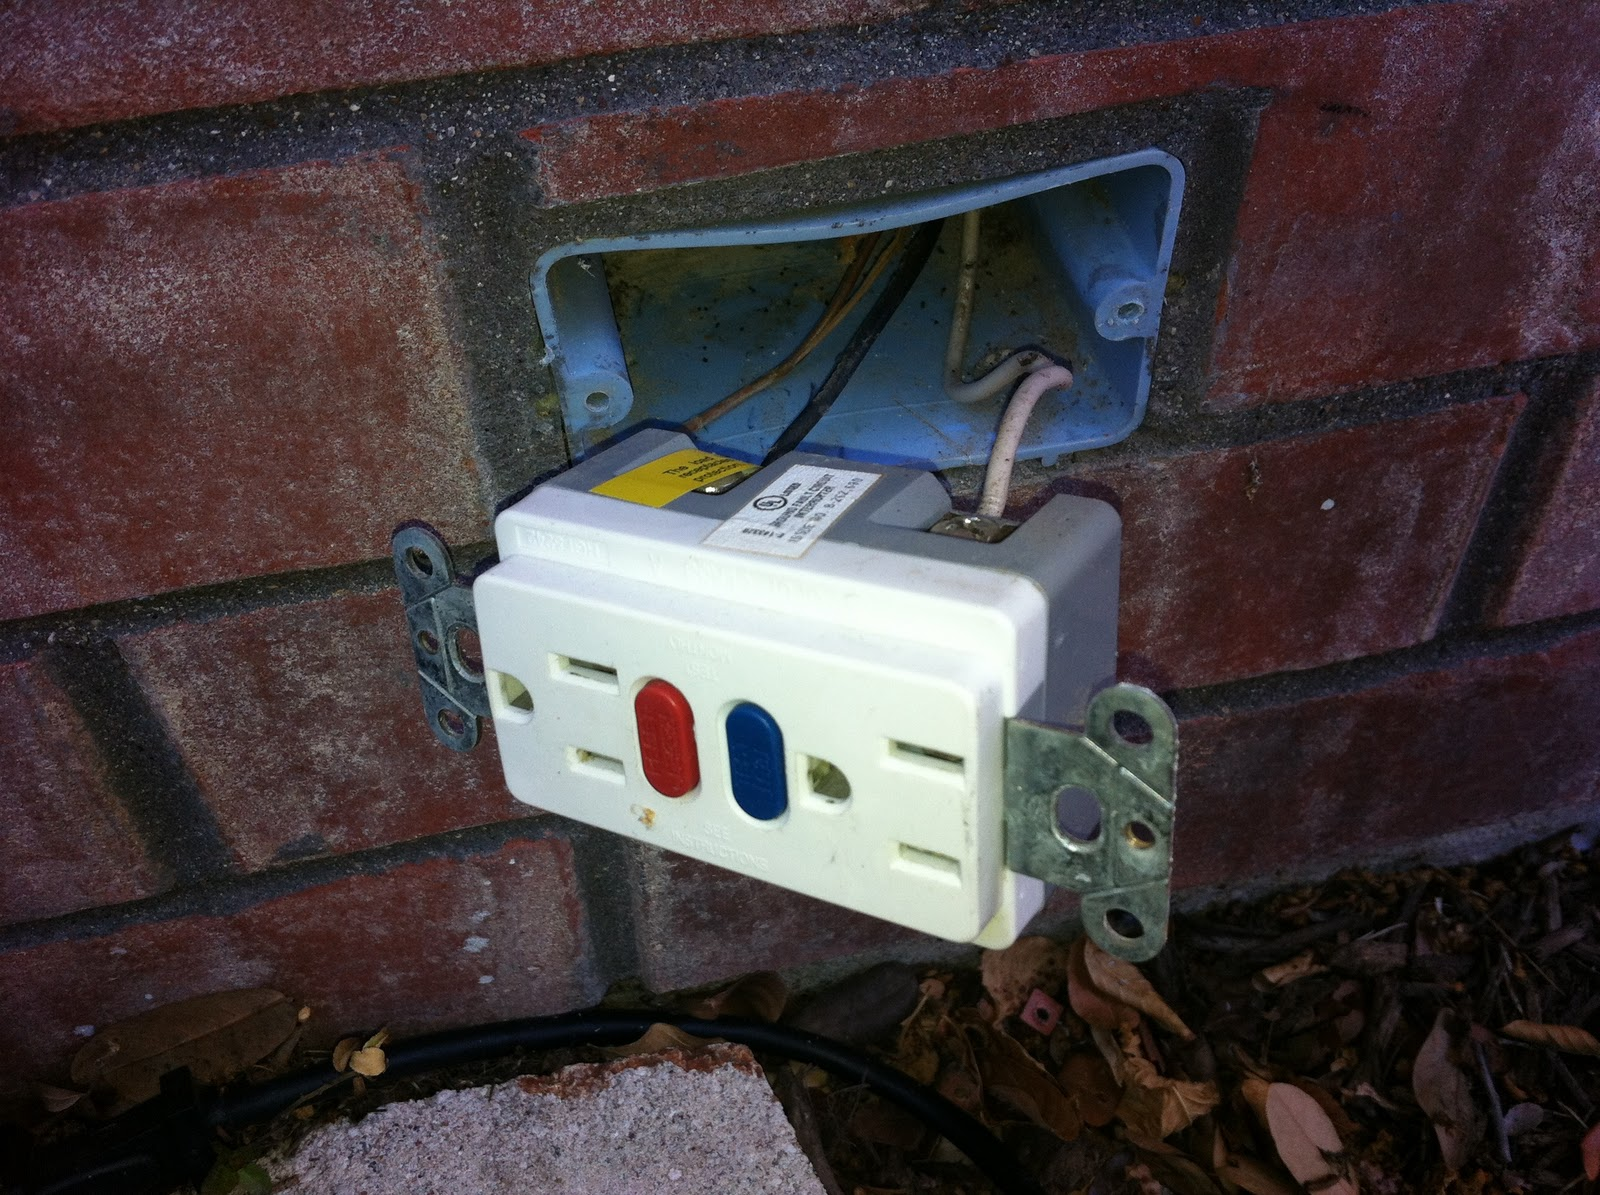 The Lean Remodeler Taking On An Outdoor Gfci Outlet Wiring Receptacle Tuesday November 29 2011